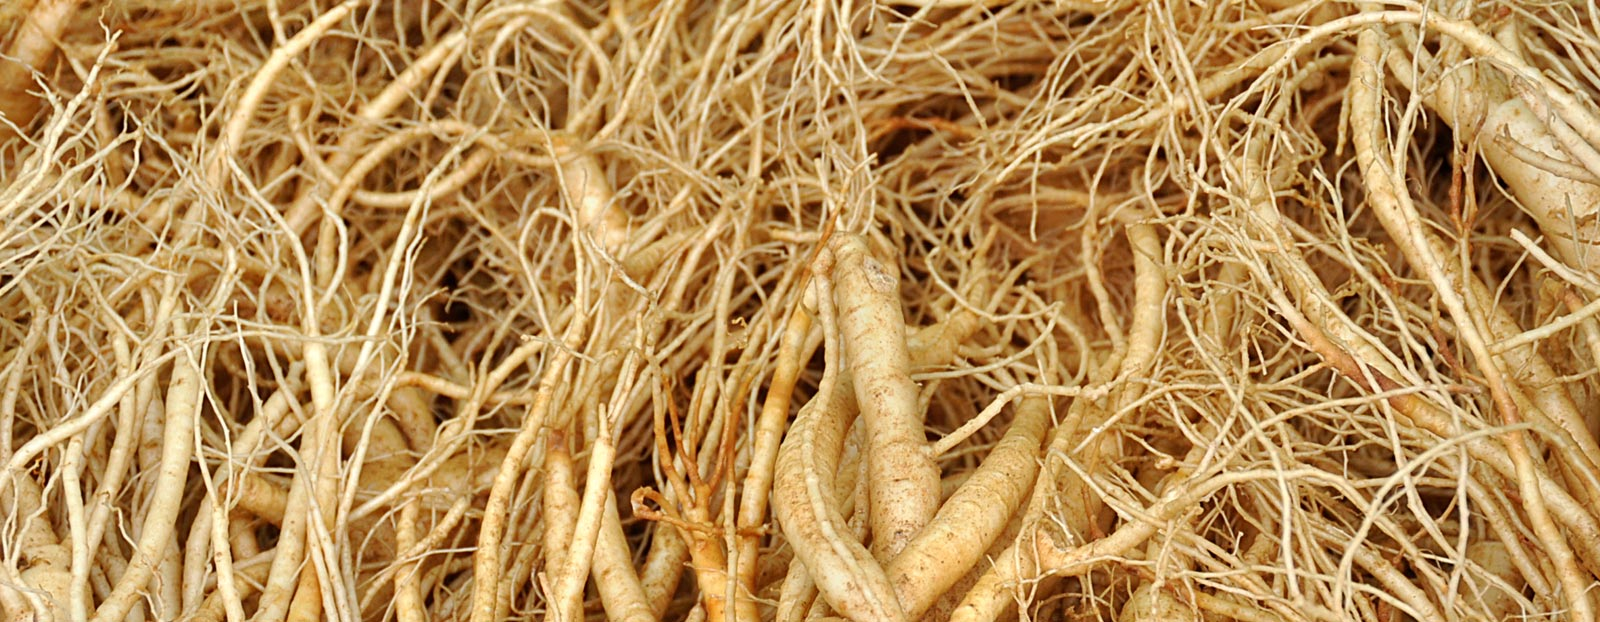 Ginseng in its natural habitat